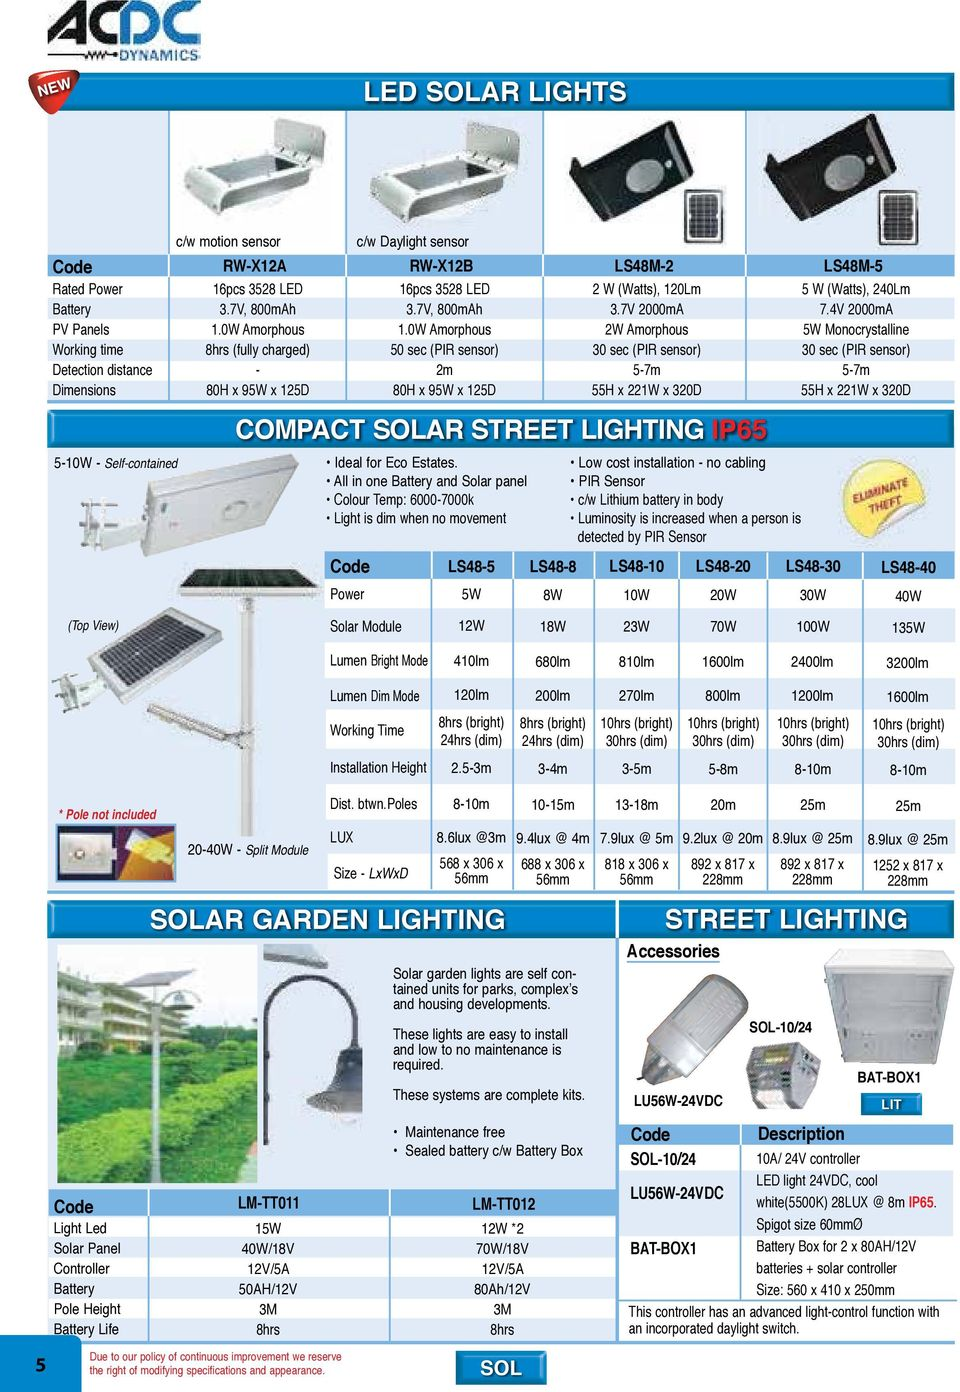 Distributed Solar Power Systems Short Form Catalogue Pdf Panel Cell 6v 1w Polycrystalline Portable 110x60mm Low Cost Installation No Cabling All In One Battery And Pir Sensor Colour Temp